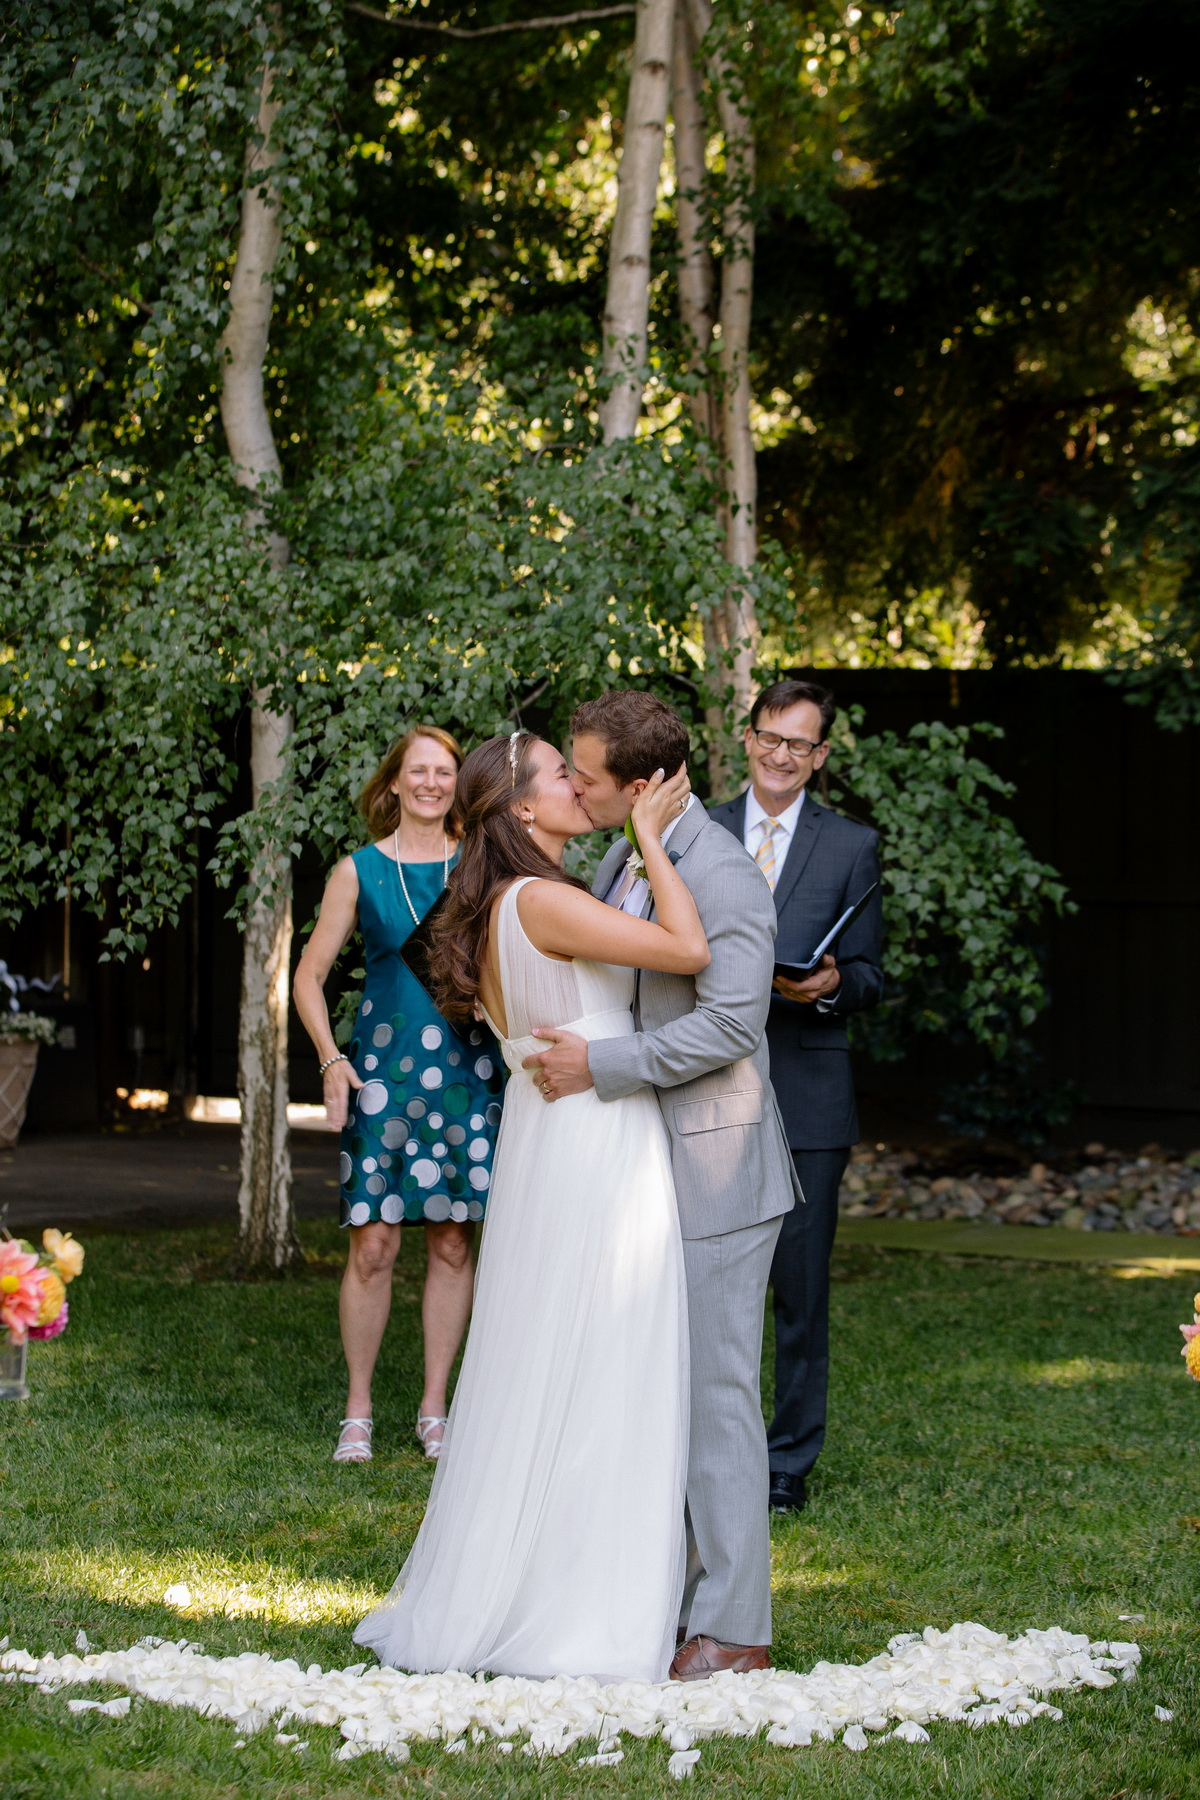 bride and groom kiss during their backyard wedding ceremony